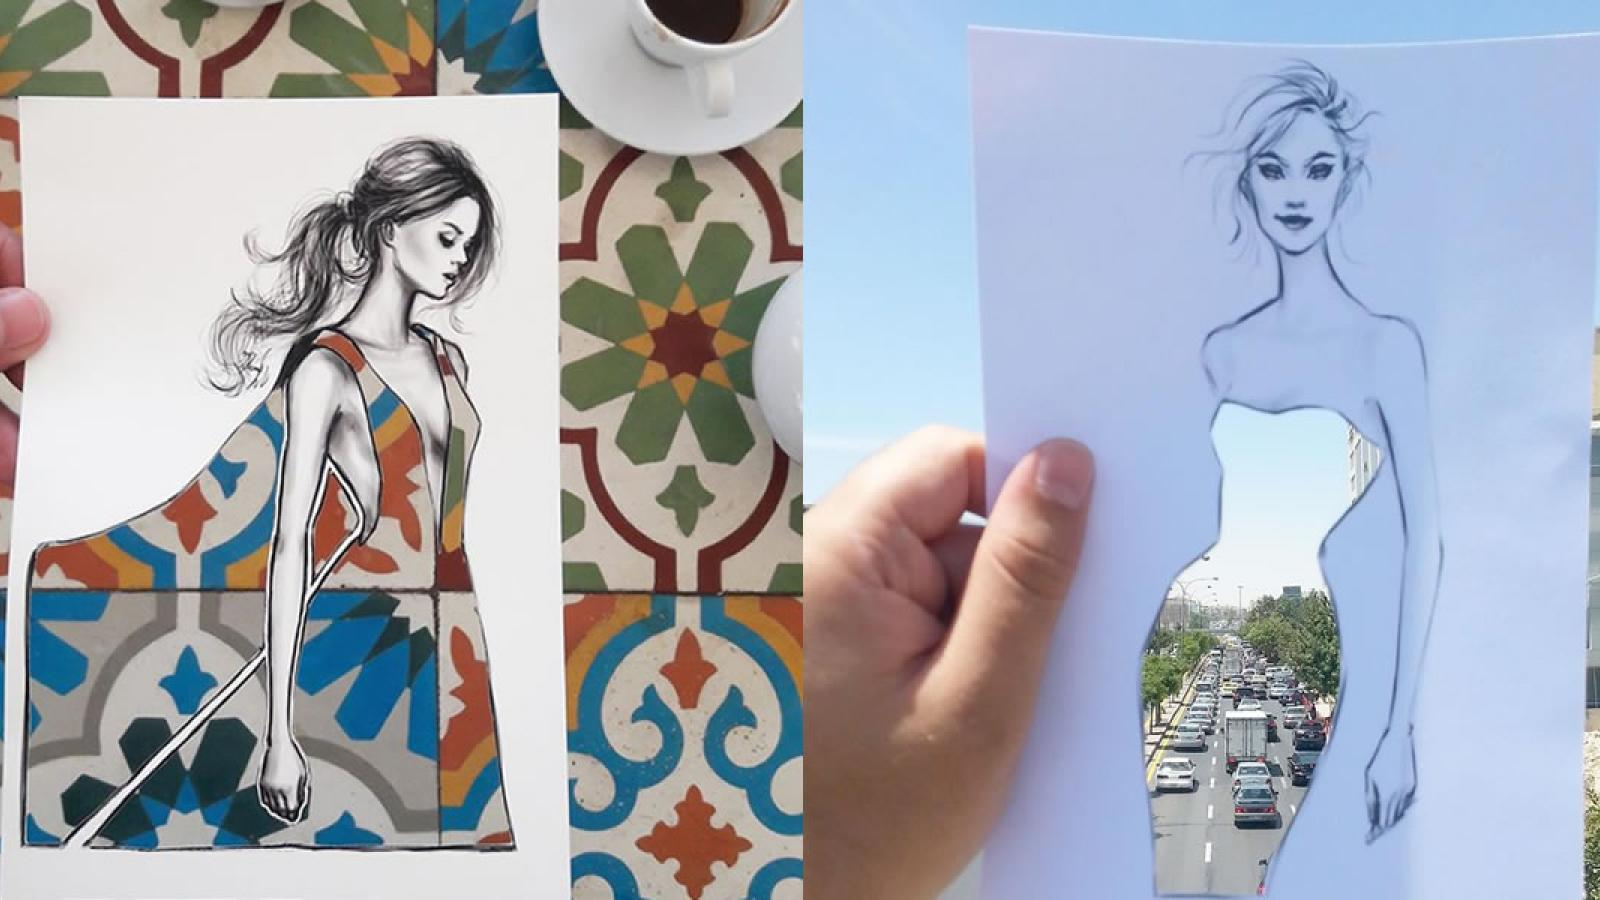 Beautifully Illustrated Cut-Out Dresses gain life with Creative Backgrounds